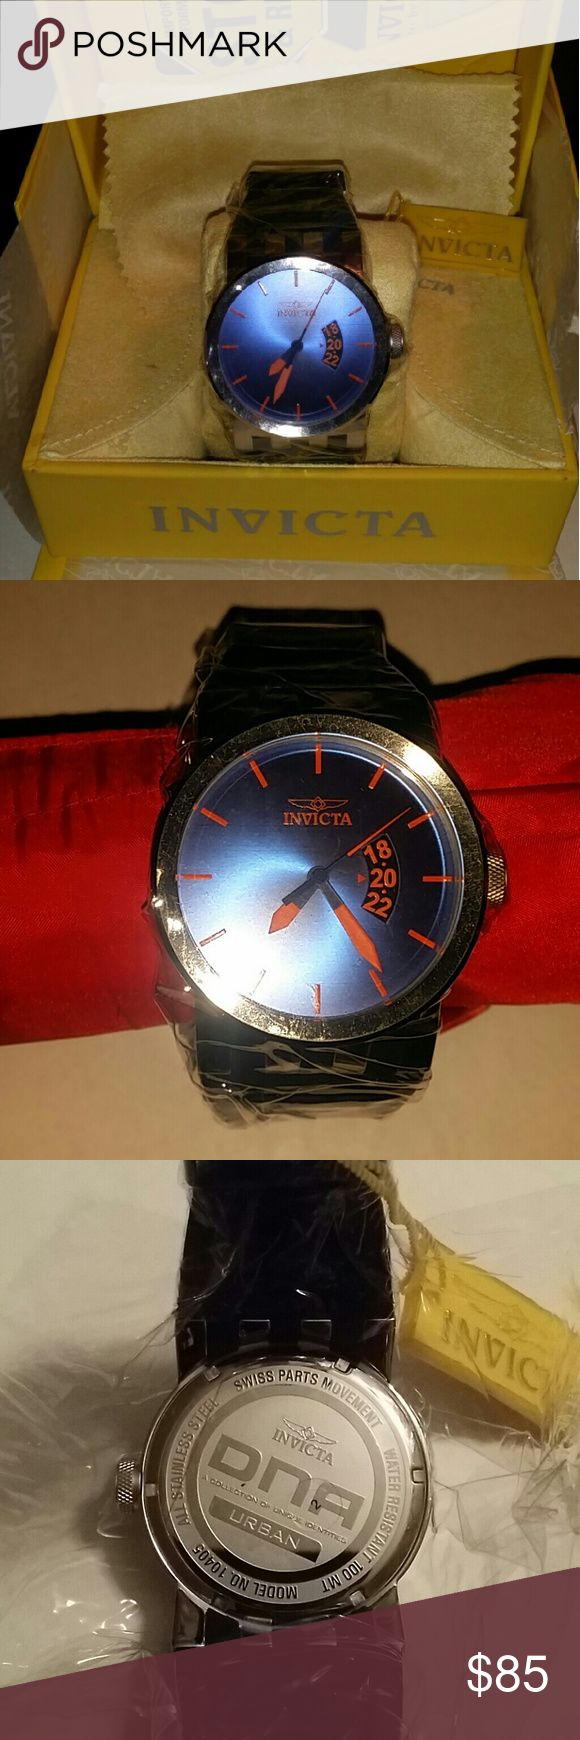 Invicta watch Brand new in the box. Never worn. Blue face, orange details, stainless steel, silicone strap. Great for a fashionable person or for representing a school/college or sports team. Men's watch but can be worn by a woman who likes a large face watch. Invicta Accessories Watches